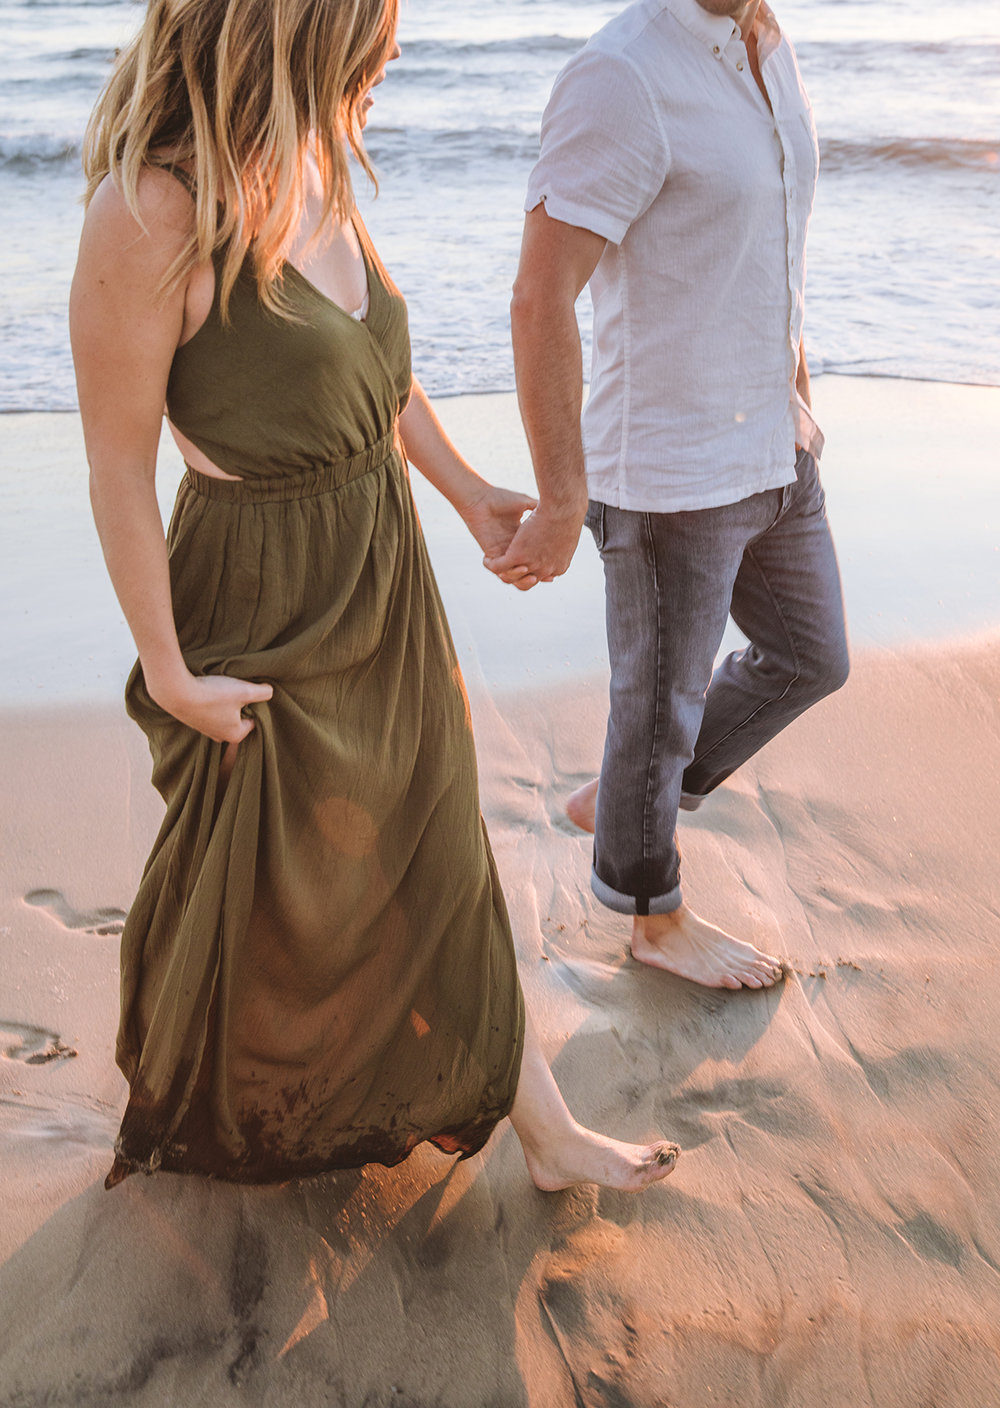 Julep-Belle-Engagement-Photography-Beach-12.jpg